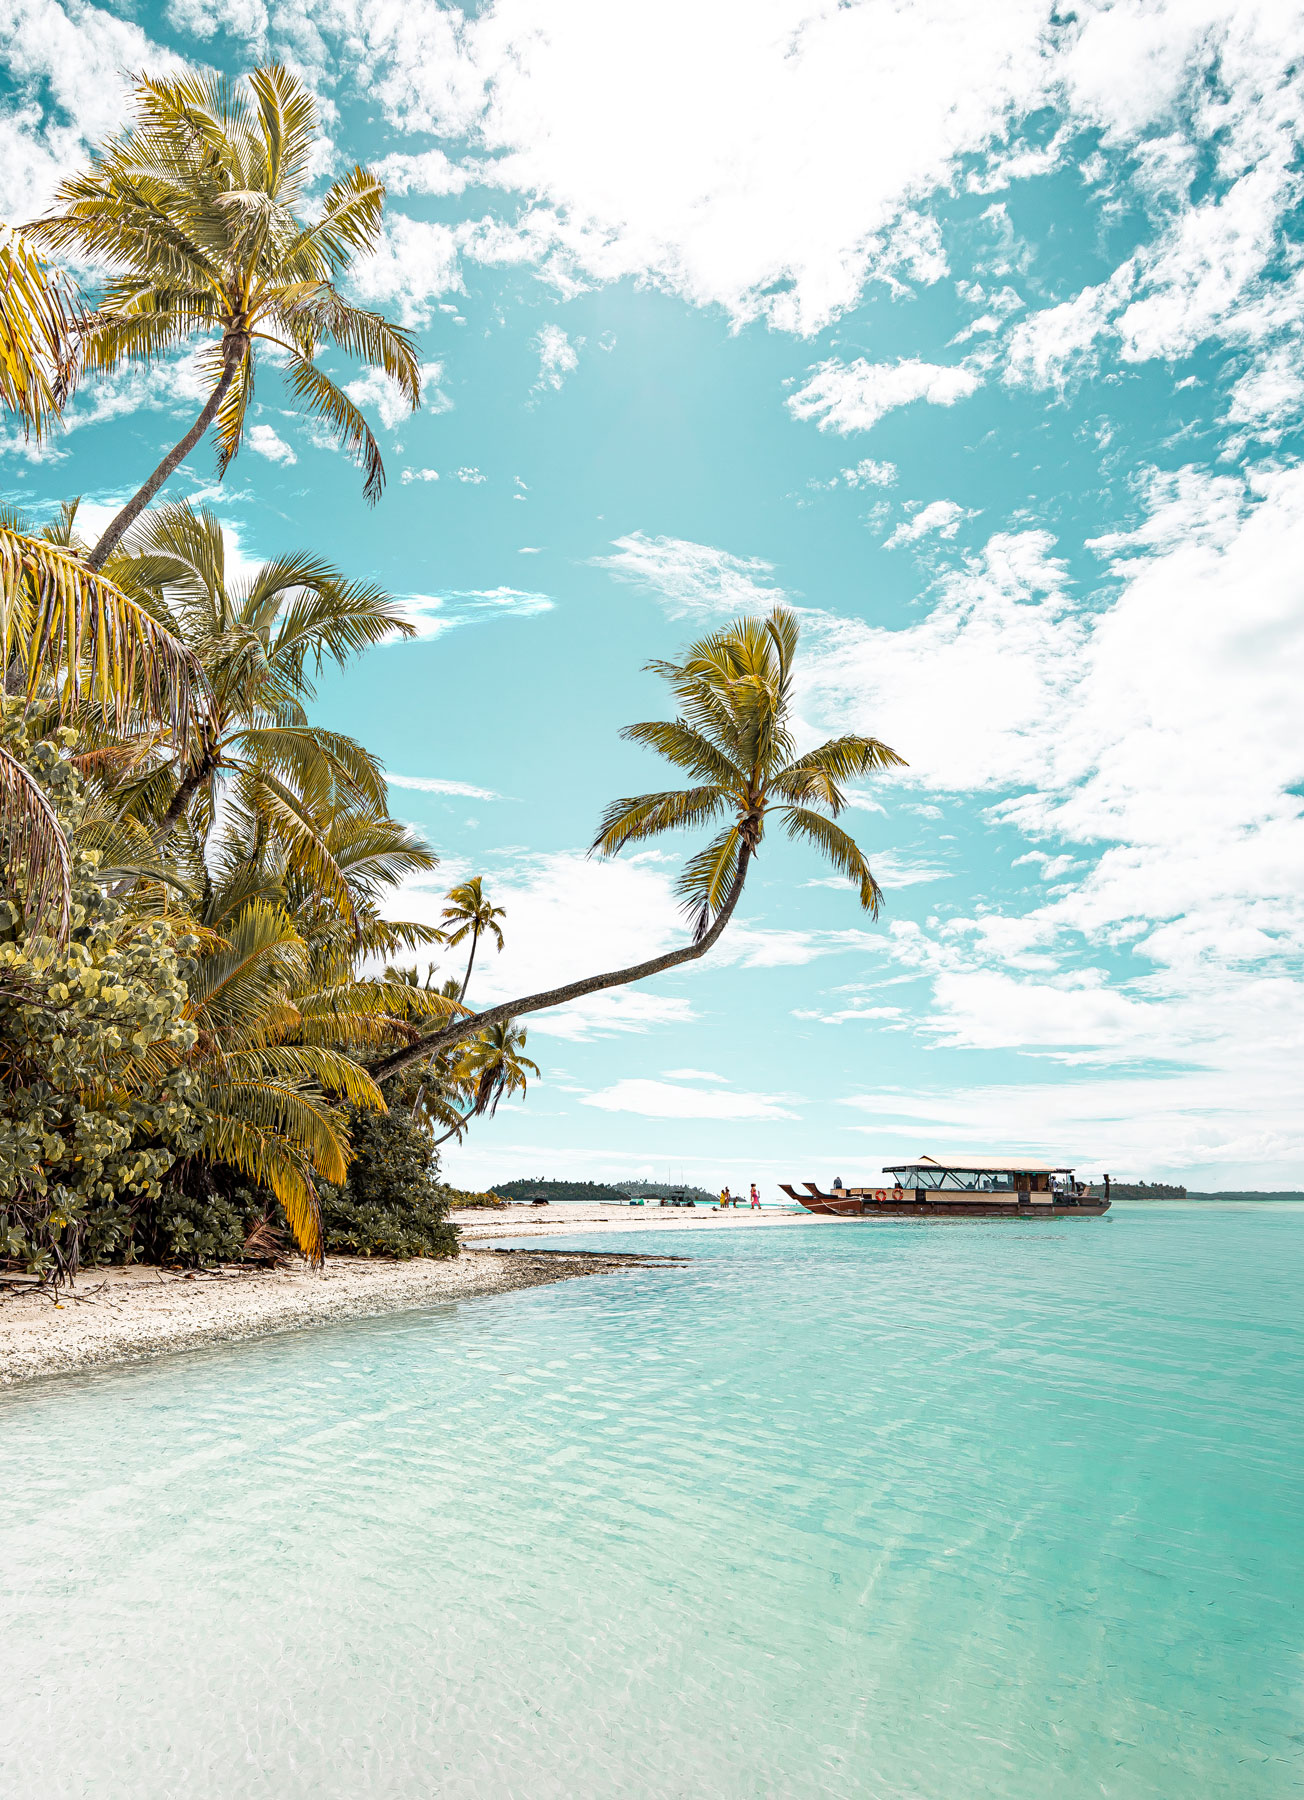 Cook-Islands-Travel-Guide-–-Rarotonga-–-Aitutaki-–-Kelsey-Heinrichs---@kelseyinlondon